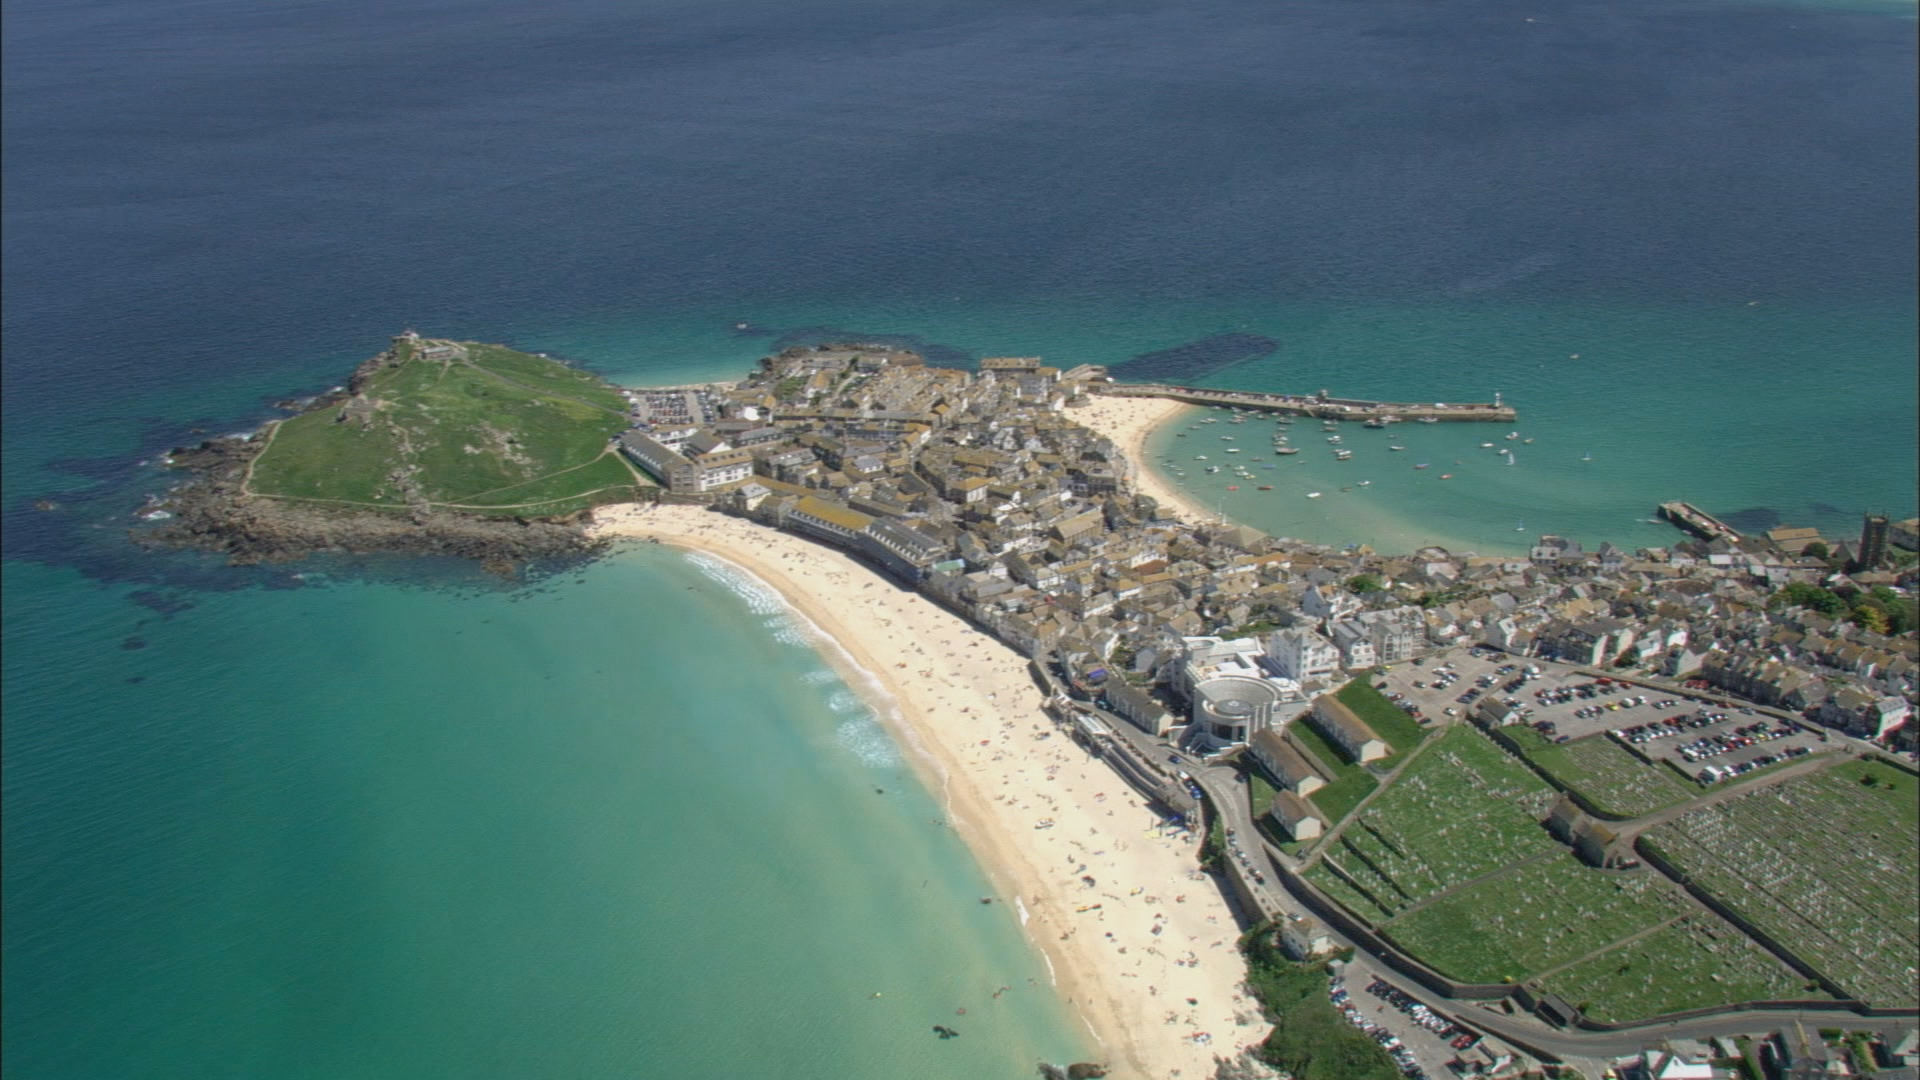 devon and cornwall cops - aeriel view of beach and coastline